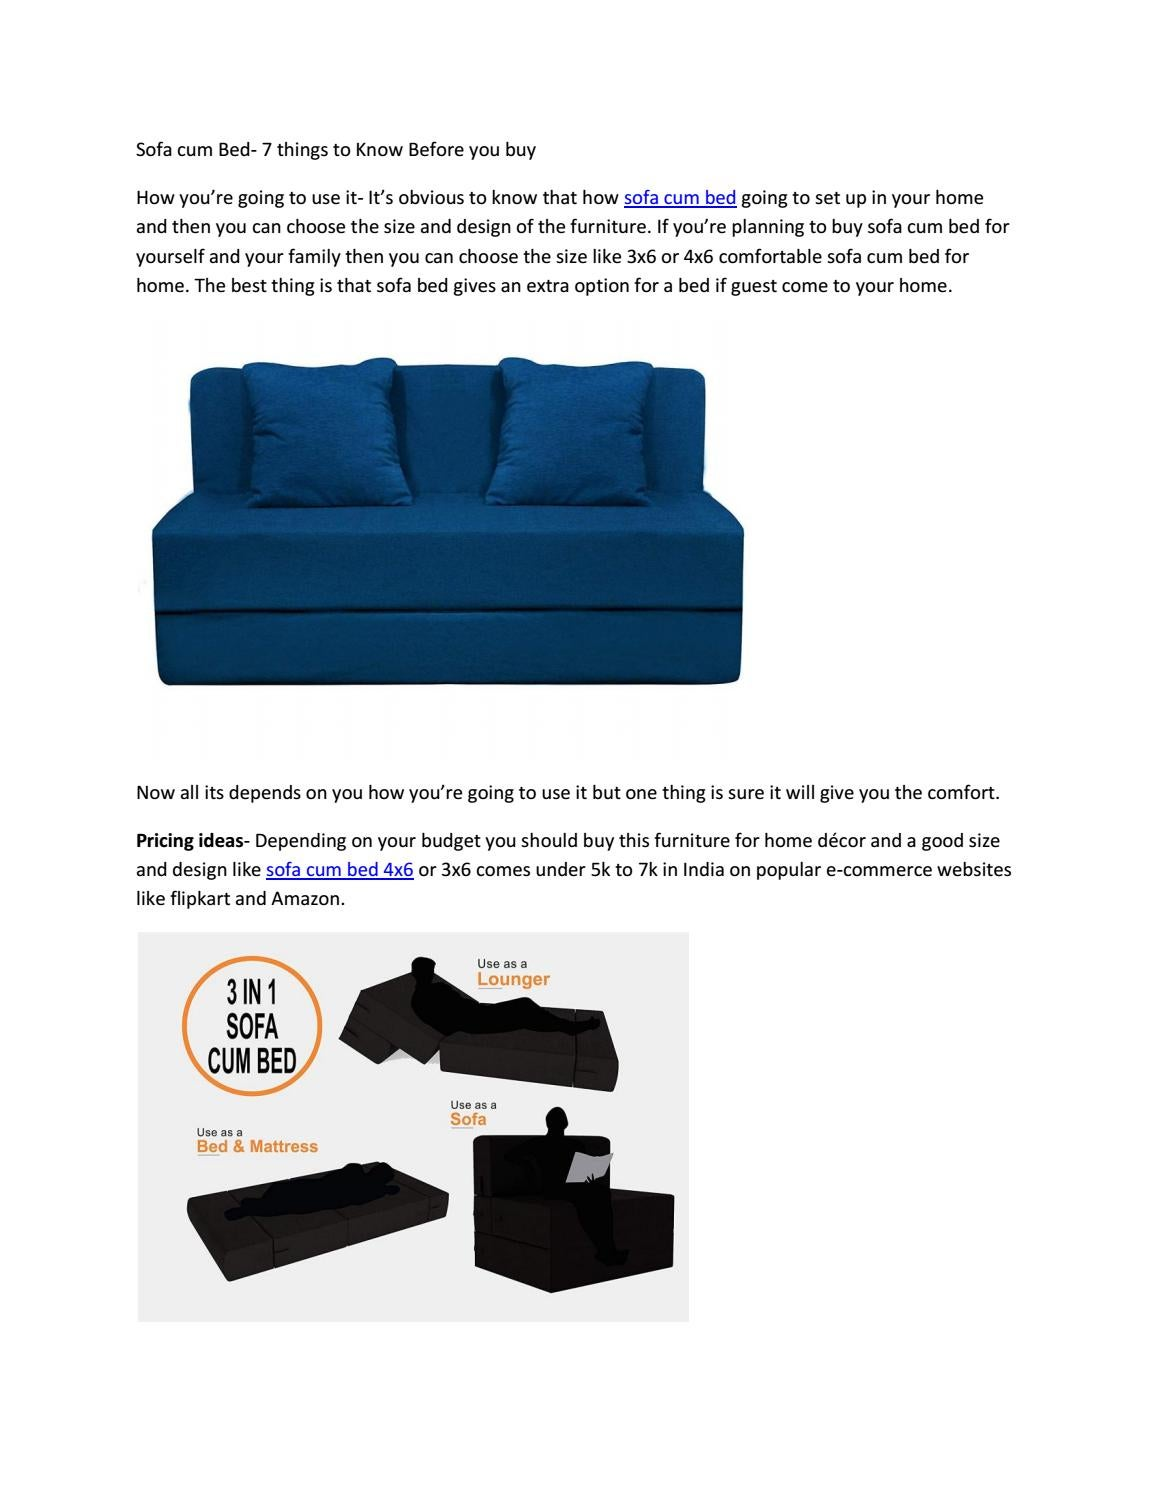 Sofa Cum Bed 7 Things To Know Before You Buy By Style Crome